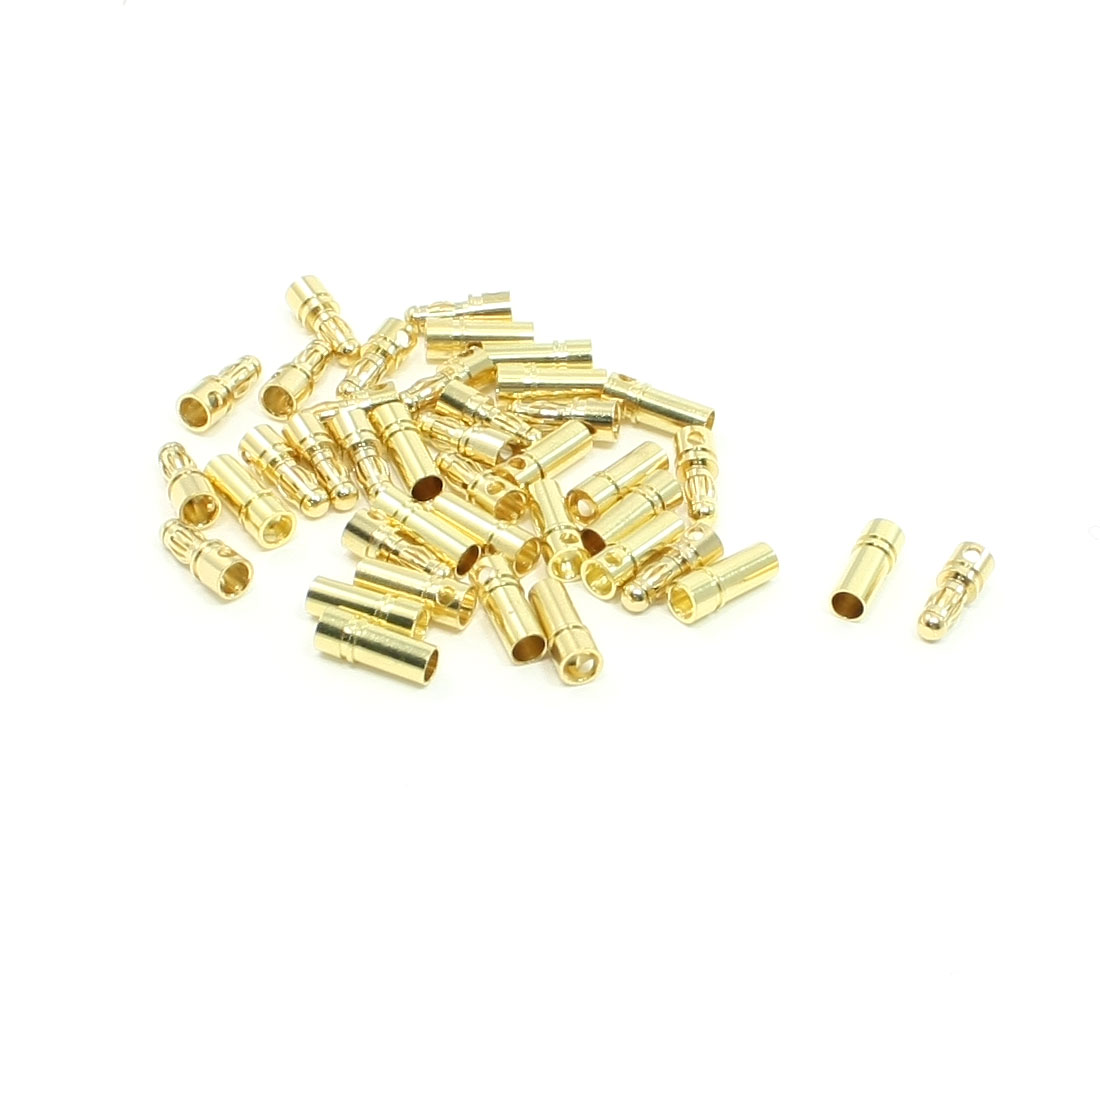 3.5mm Male Female Banana Plug Connector Replacements 20 Pairs